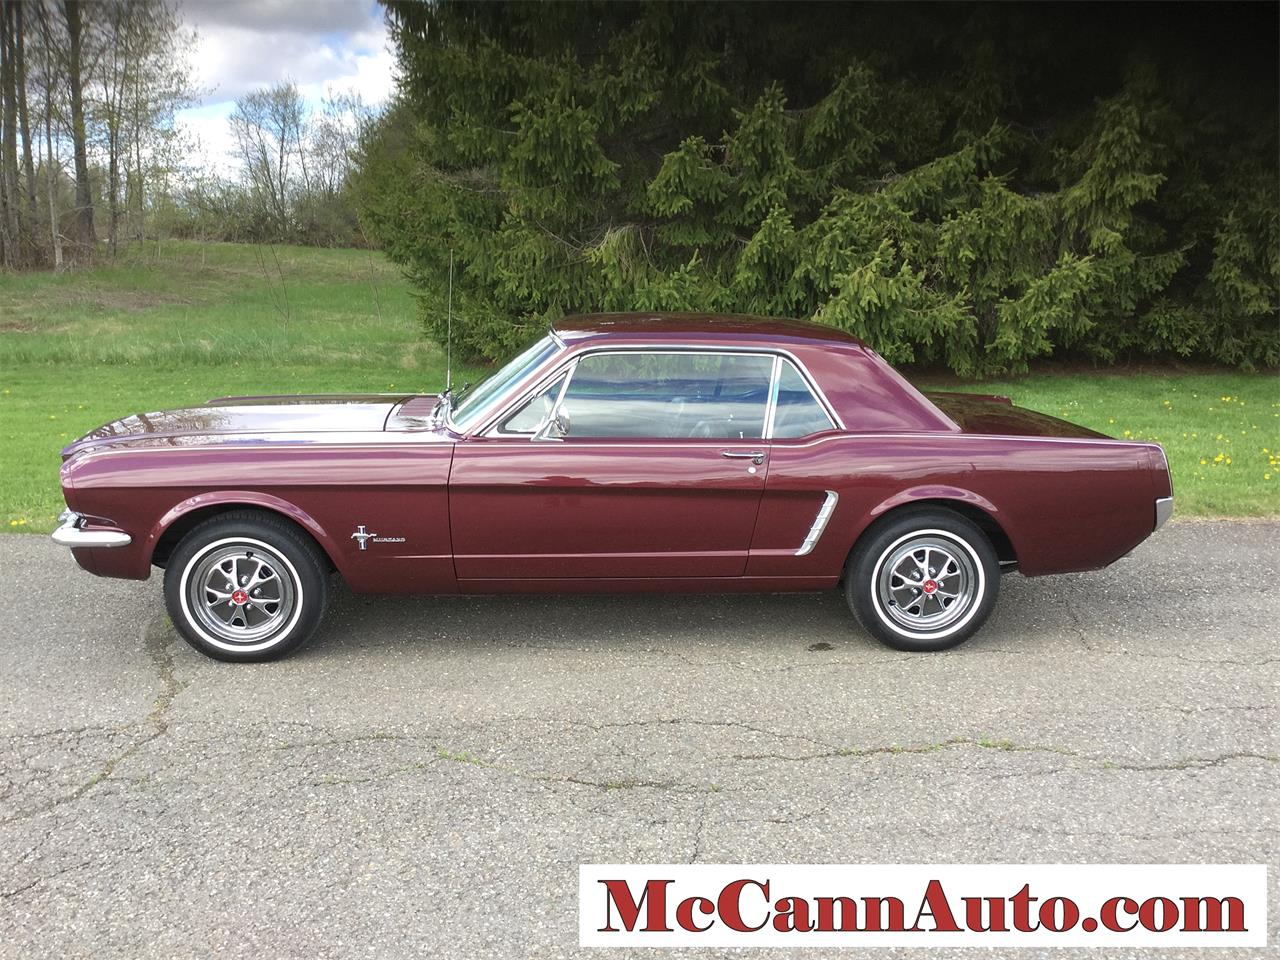 Large Picture of Classic '65 Ford Mustang - $14,995.00 - J8WB